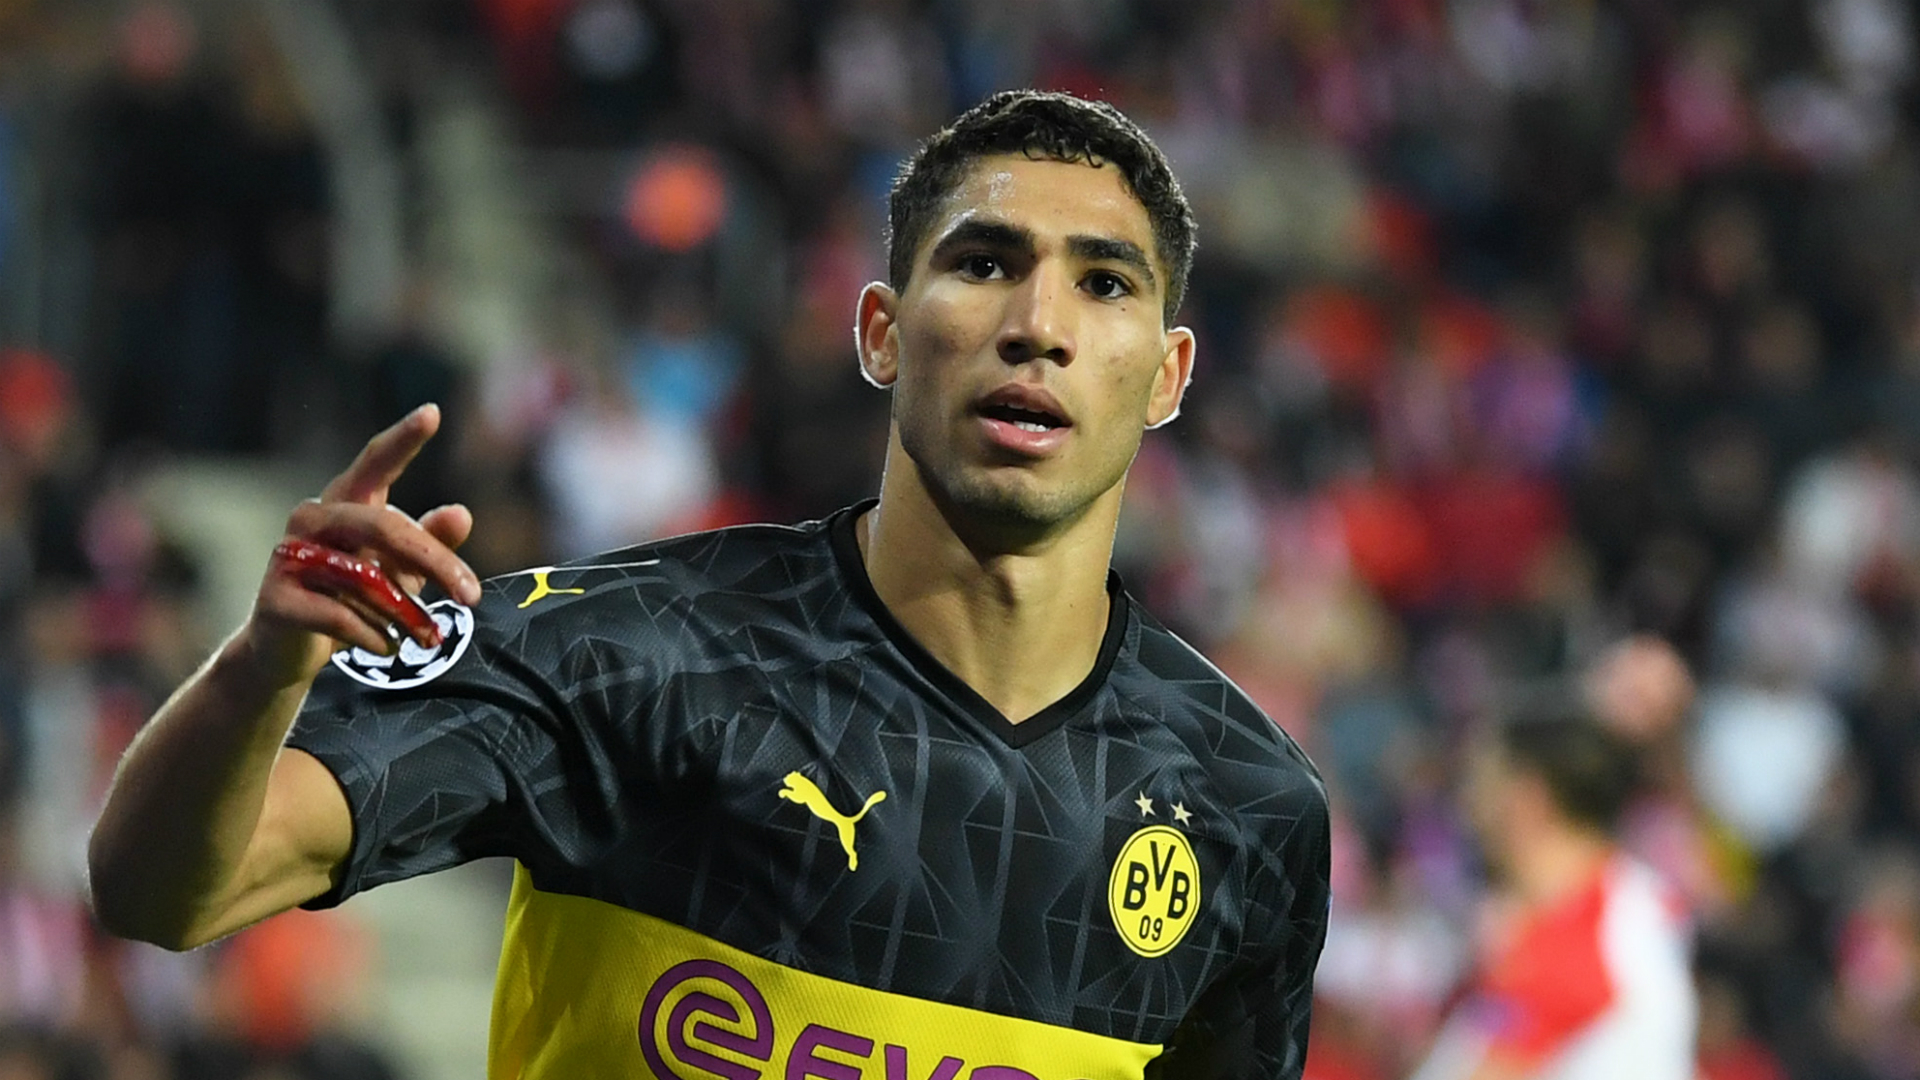 Favre hails 'dangerous' Achraf after youngster's match-winning double